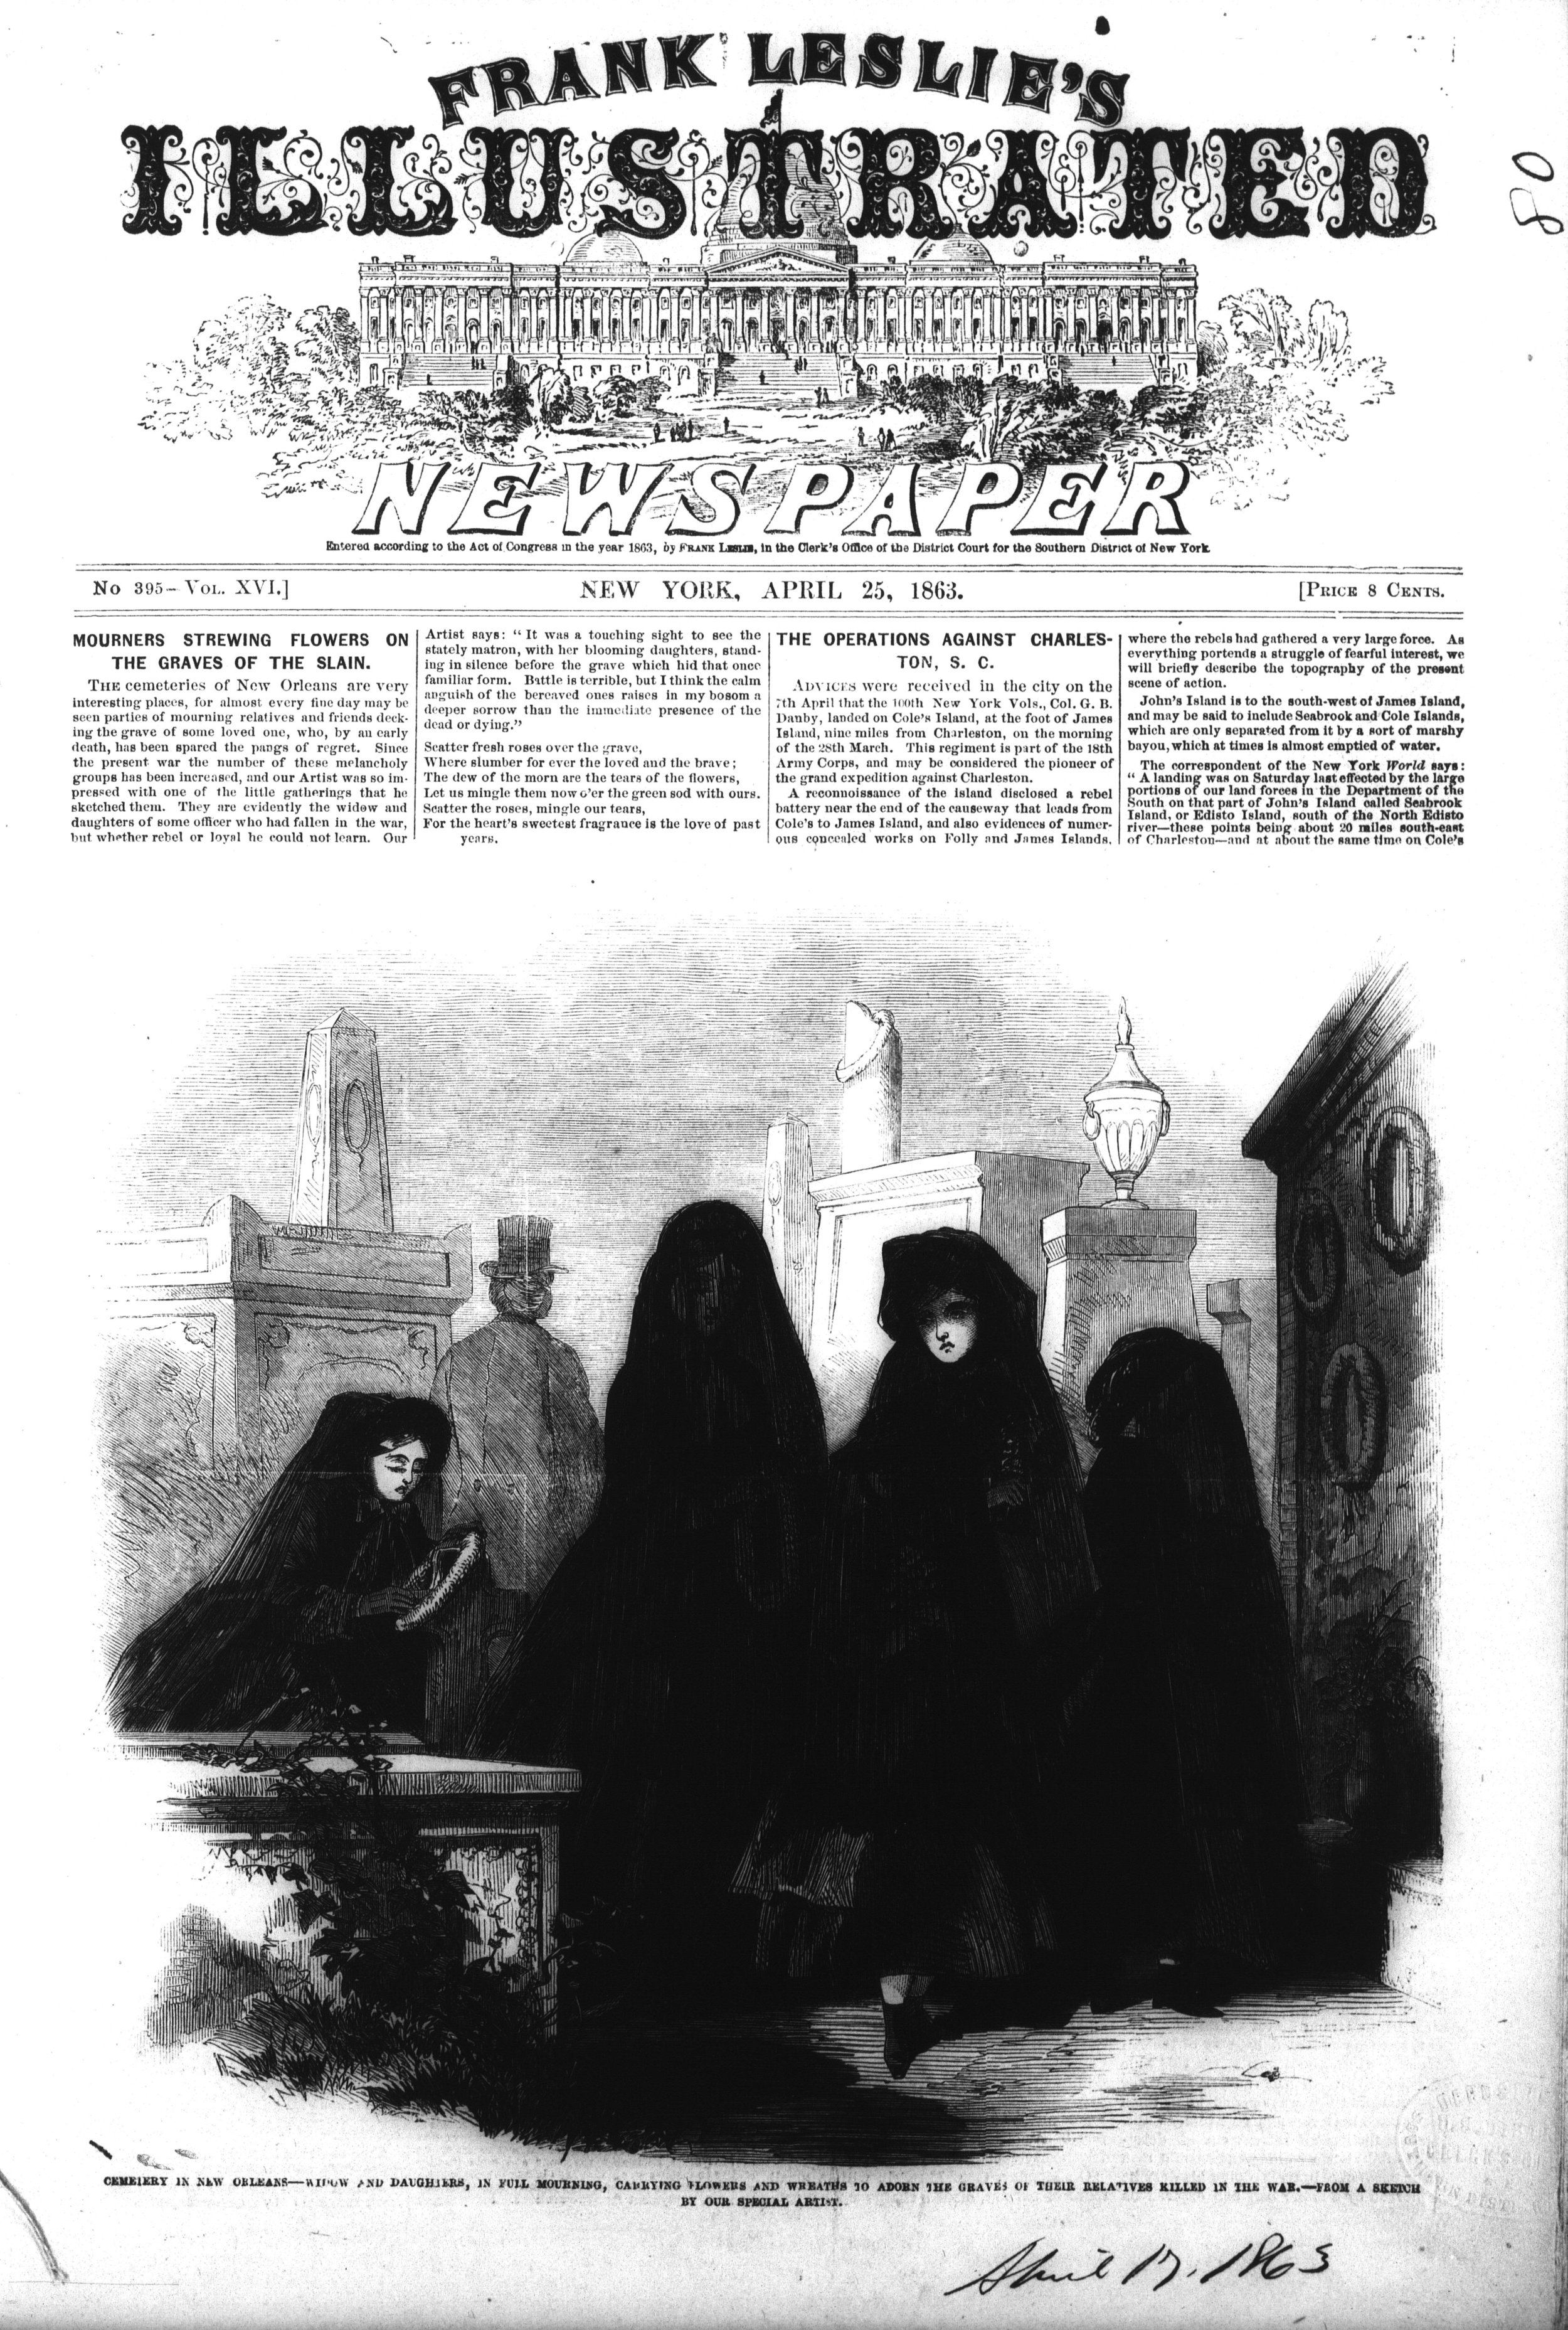 During the Civil War and well before it, the task of mourning fell to women. They were considered the most in touch with the spirit. Dressed in black, they were the embodiment of grief.   From Frank Leslie's Illustrated Weekly.